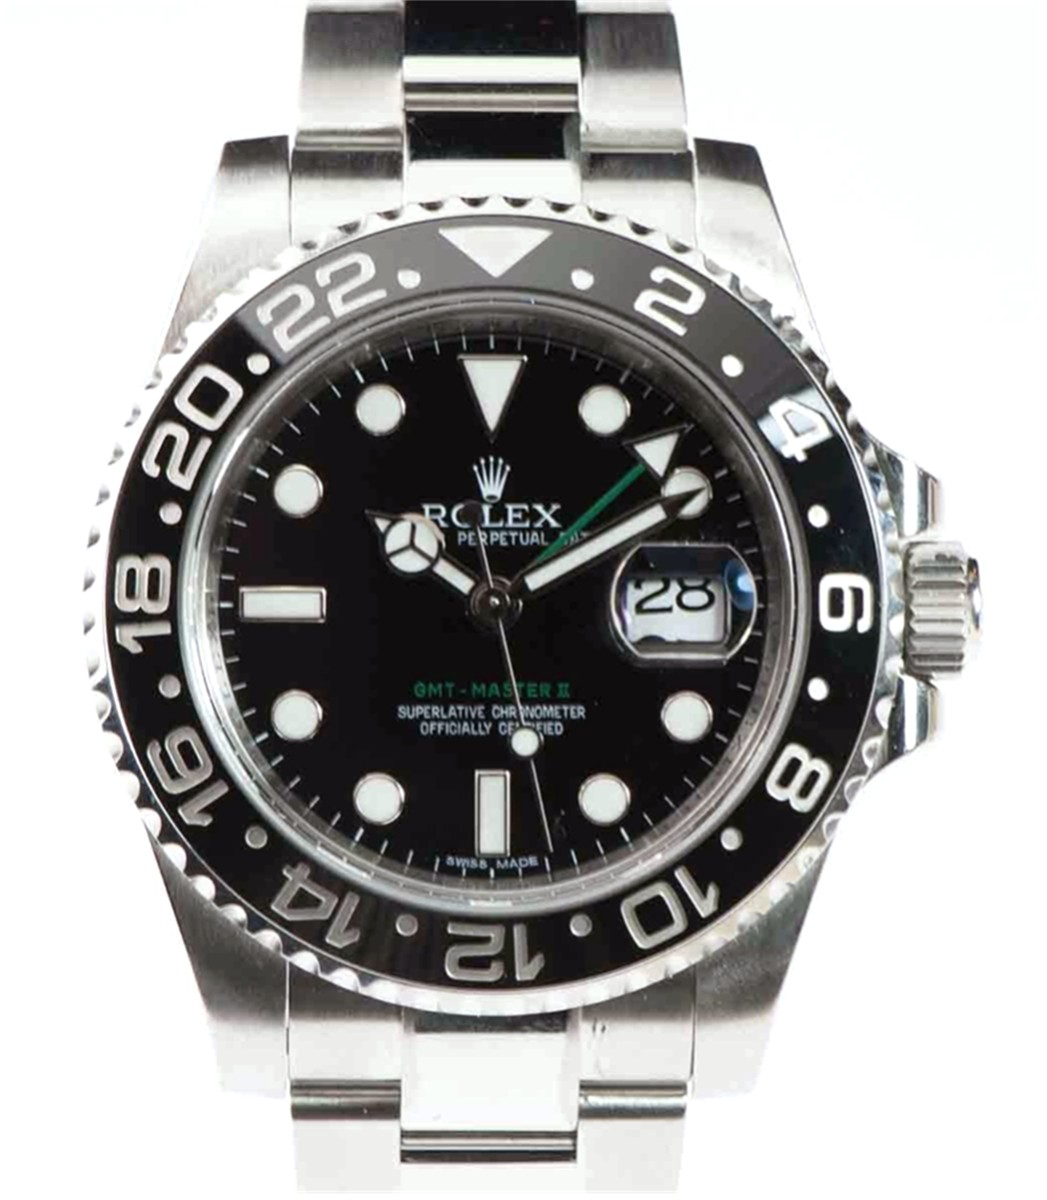 Rolex GMT-Master II Ceramic Bezel Model#116710